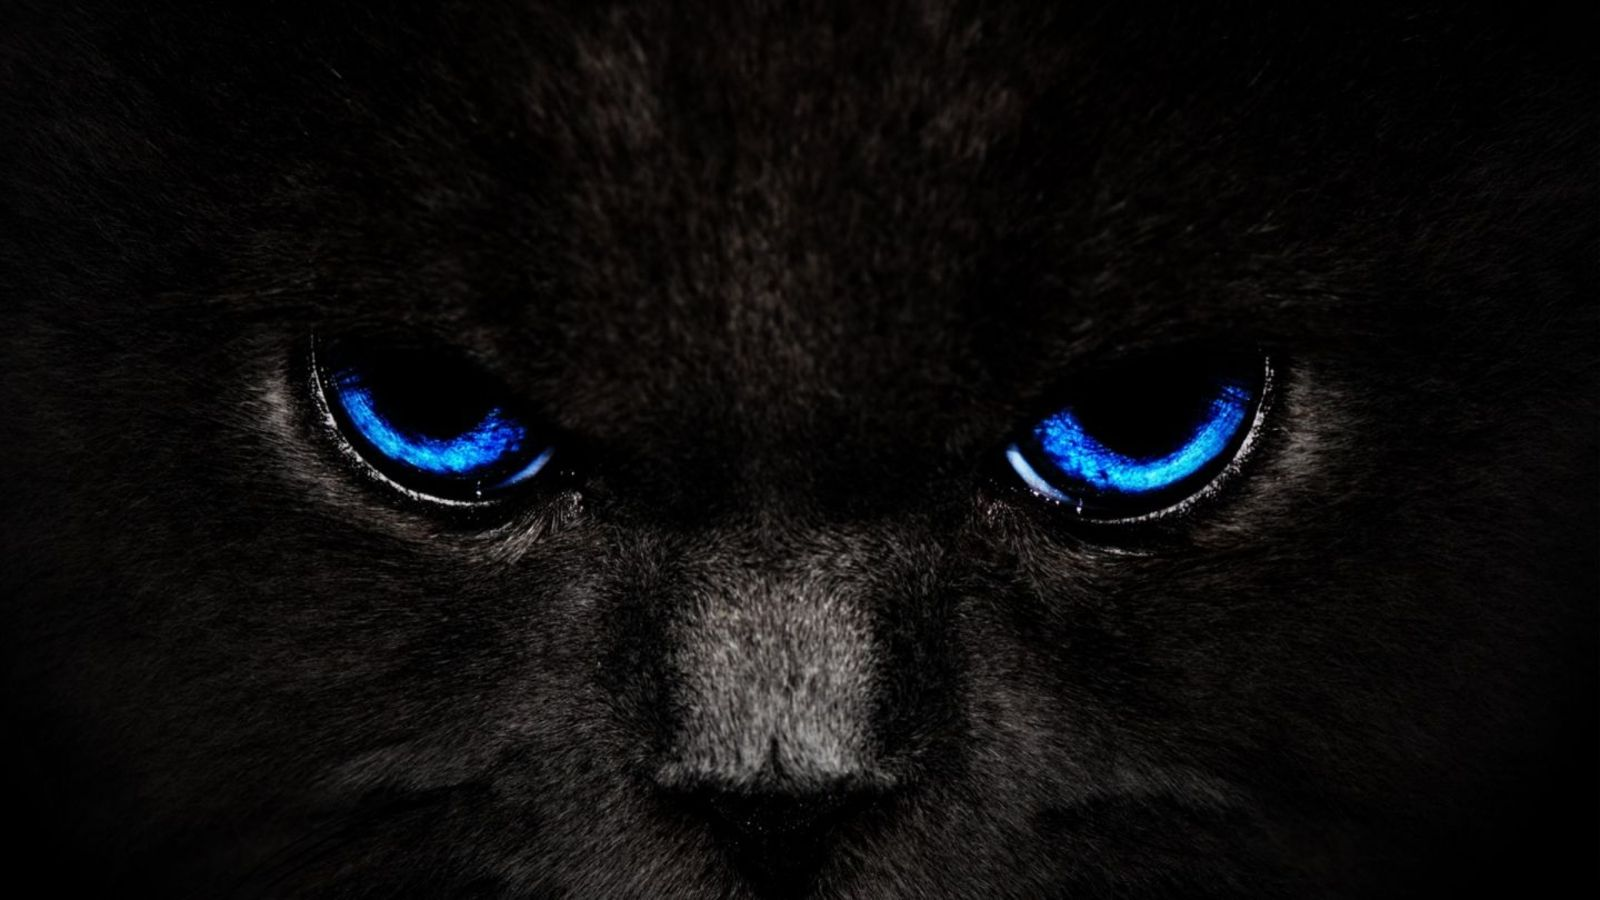 1600x1200 Px Hd Wallpapers Wallpapers Hd Black Cat Blue Eyes